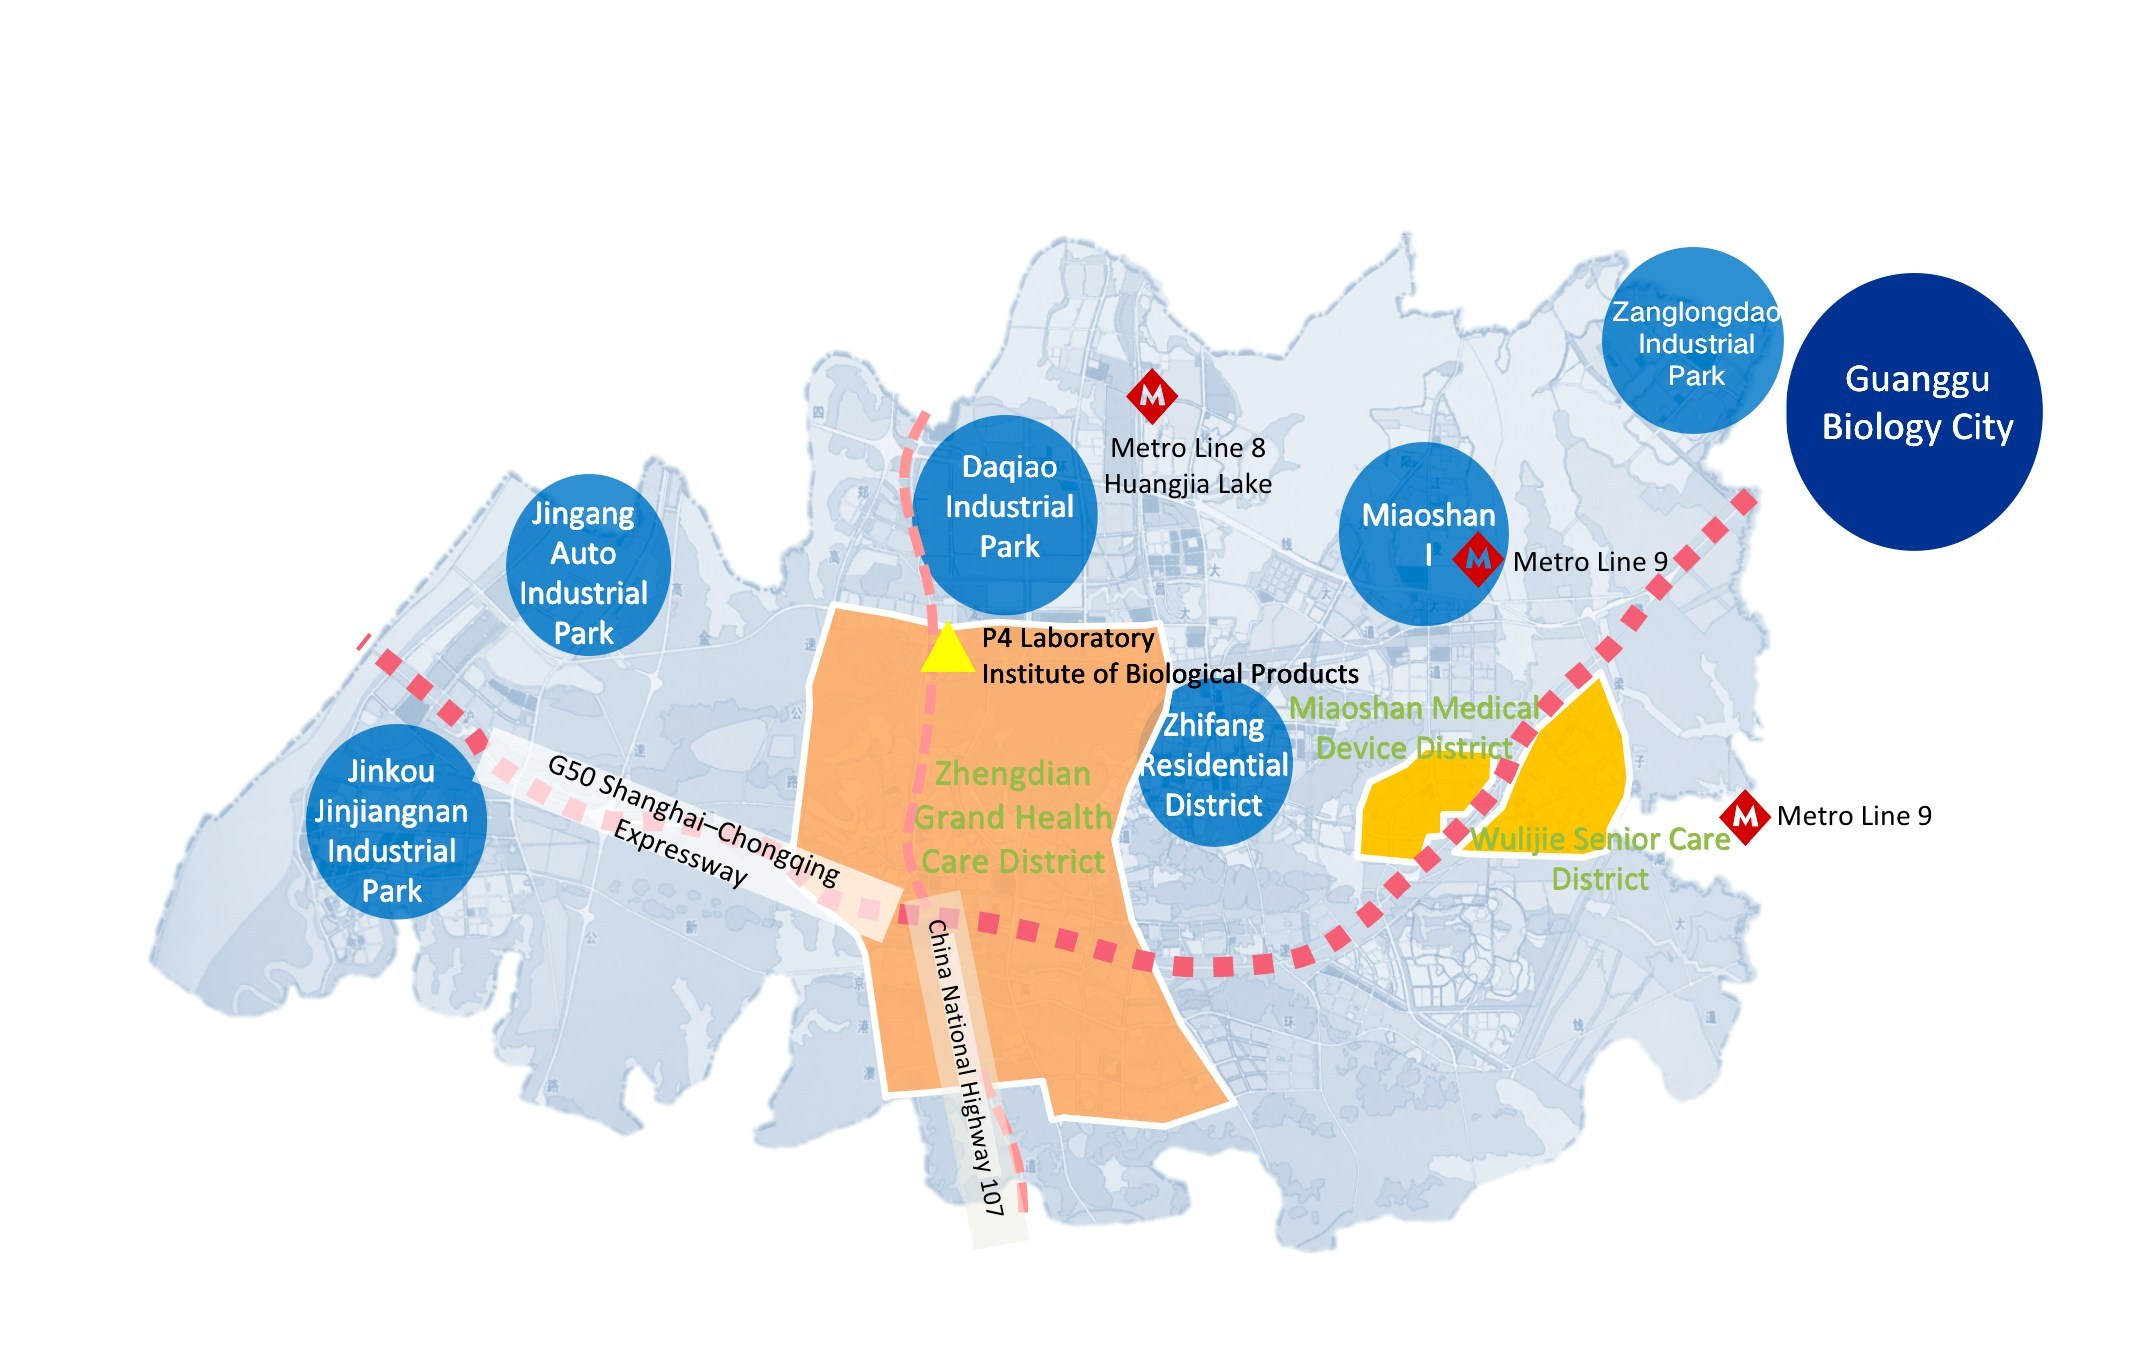 Optics Valley Subway Map For Wuhan China.Wuhan Lays Out Construction Of Guanggu Nanda Health Industrial Park